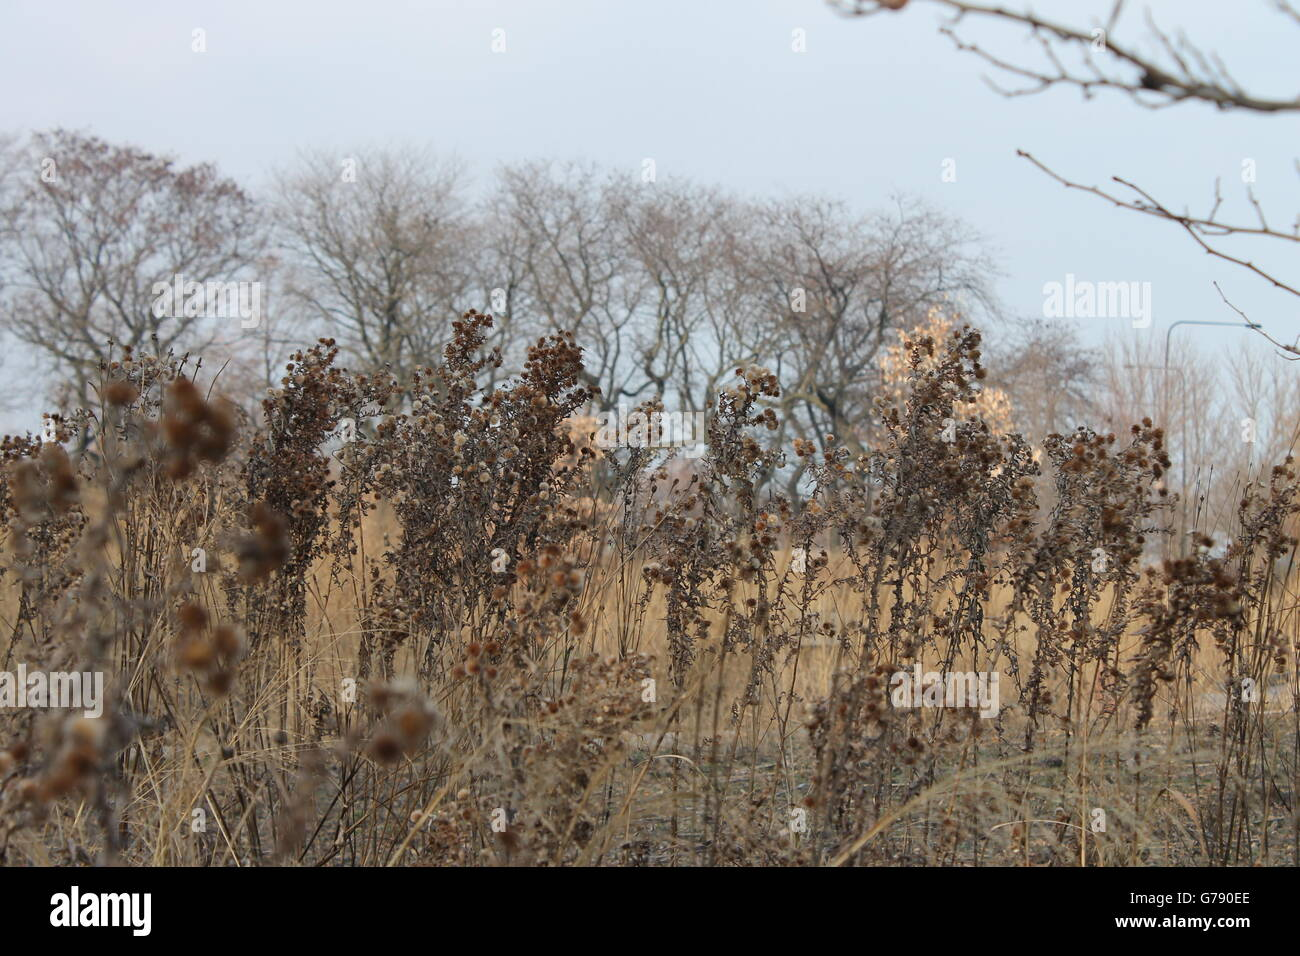 Dead plants in the Burnham Nature Sanctuary in Kenwood, Chicago, IL, USA - Stock Image